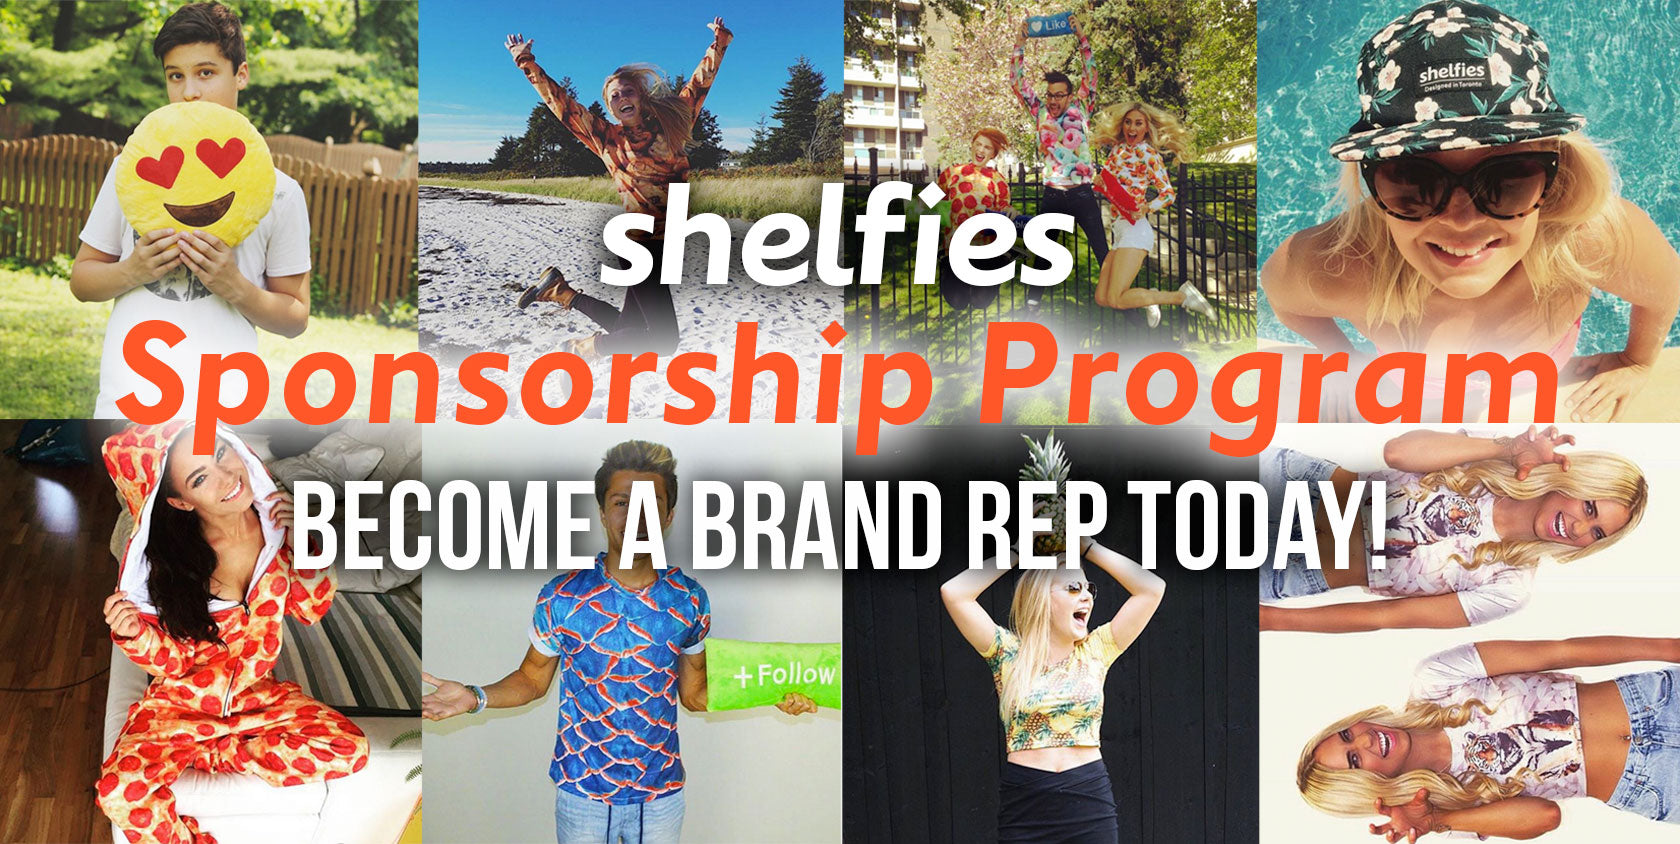 Shelfies Sponsorships